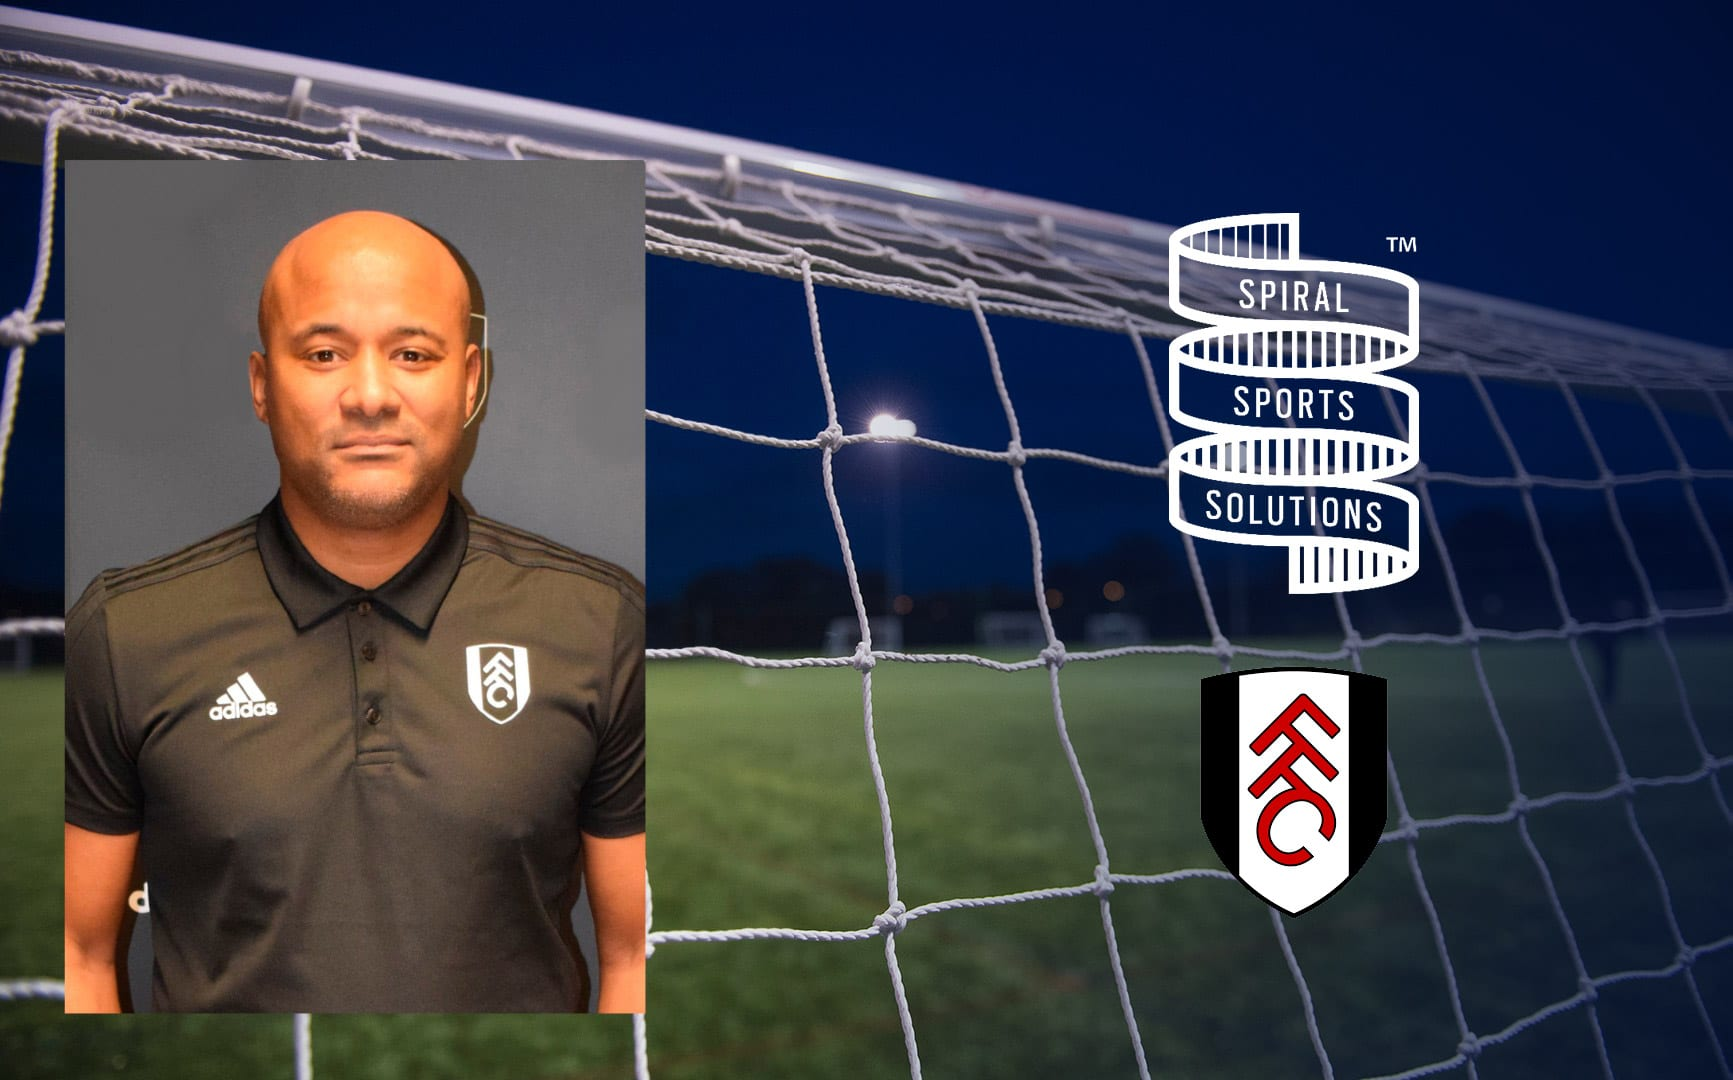 football academy partners with fulham FC and spiral sports